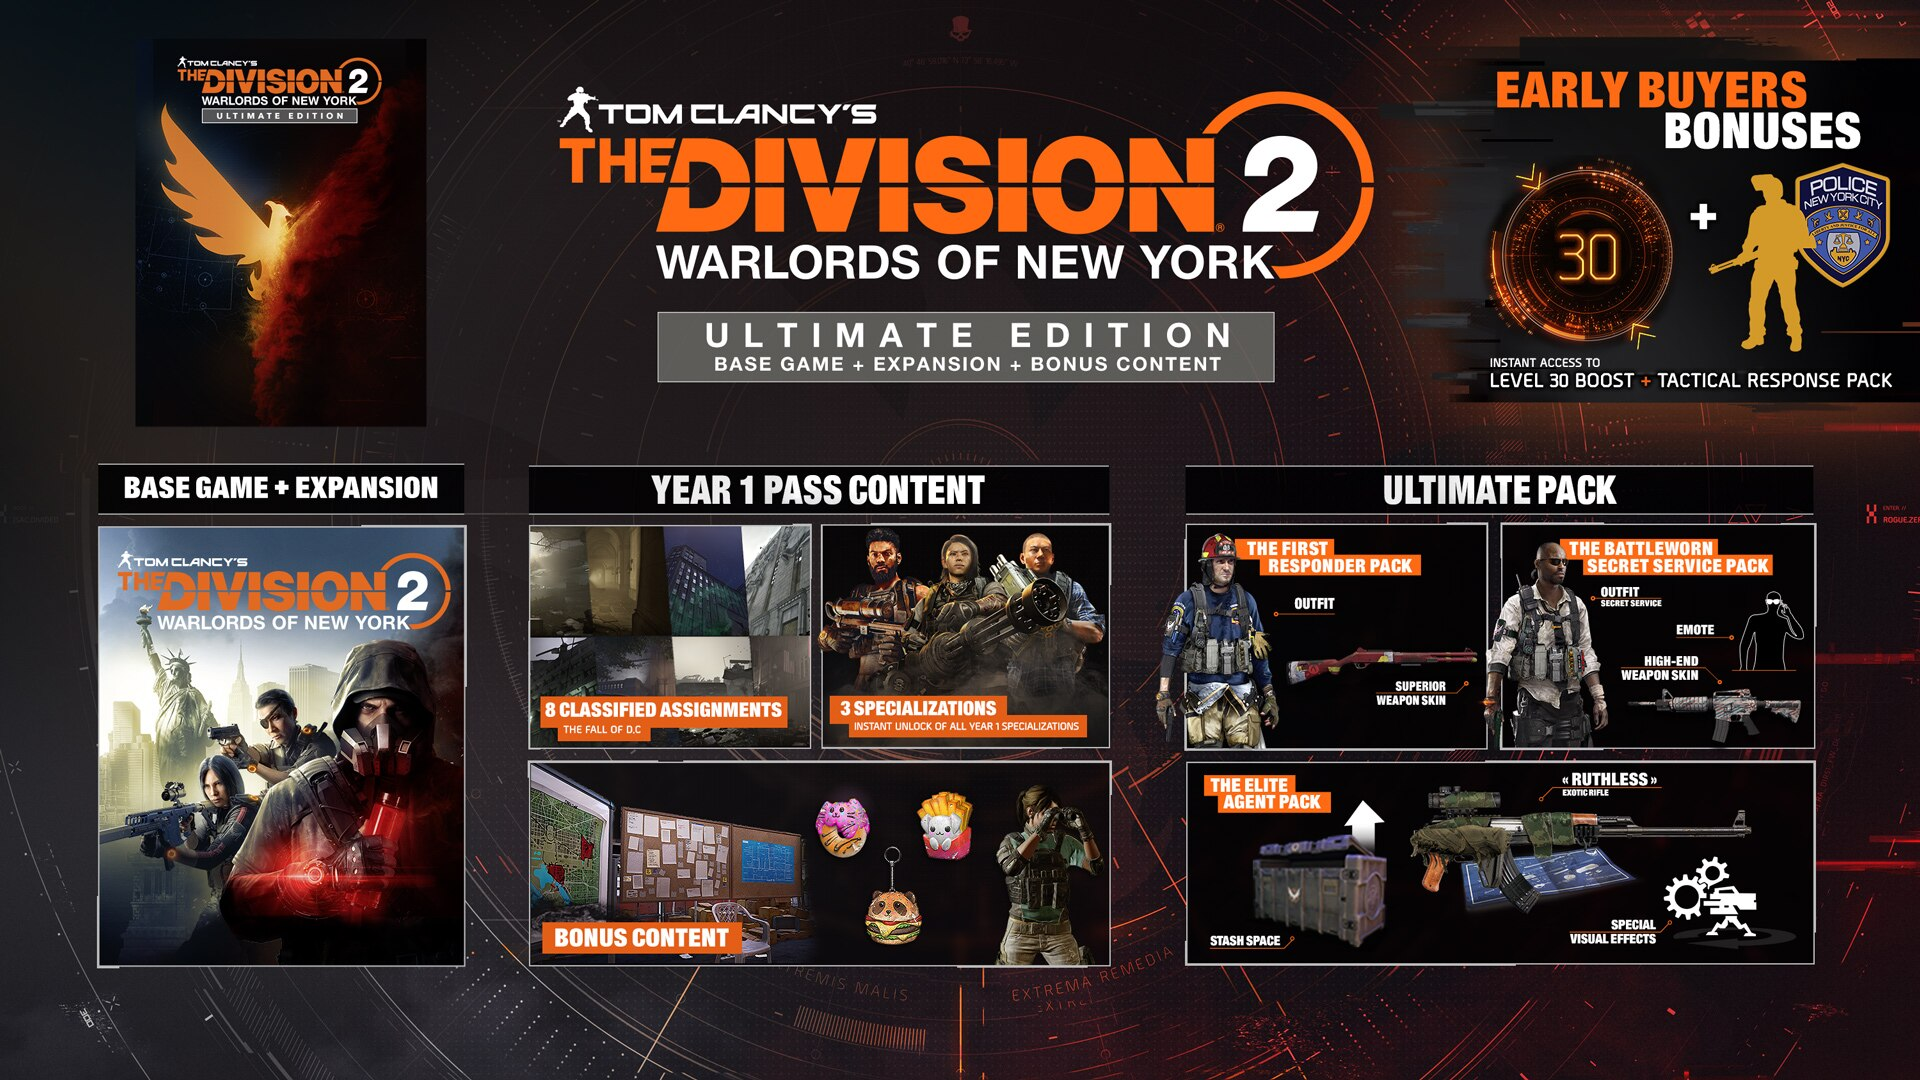 The Division 2: Warlords of New York ultimate edition